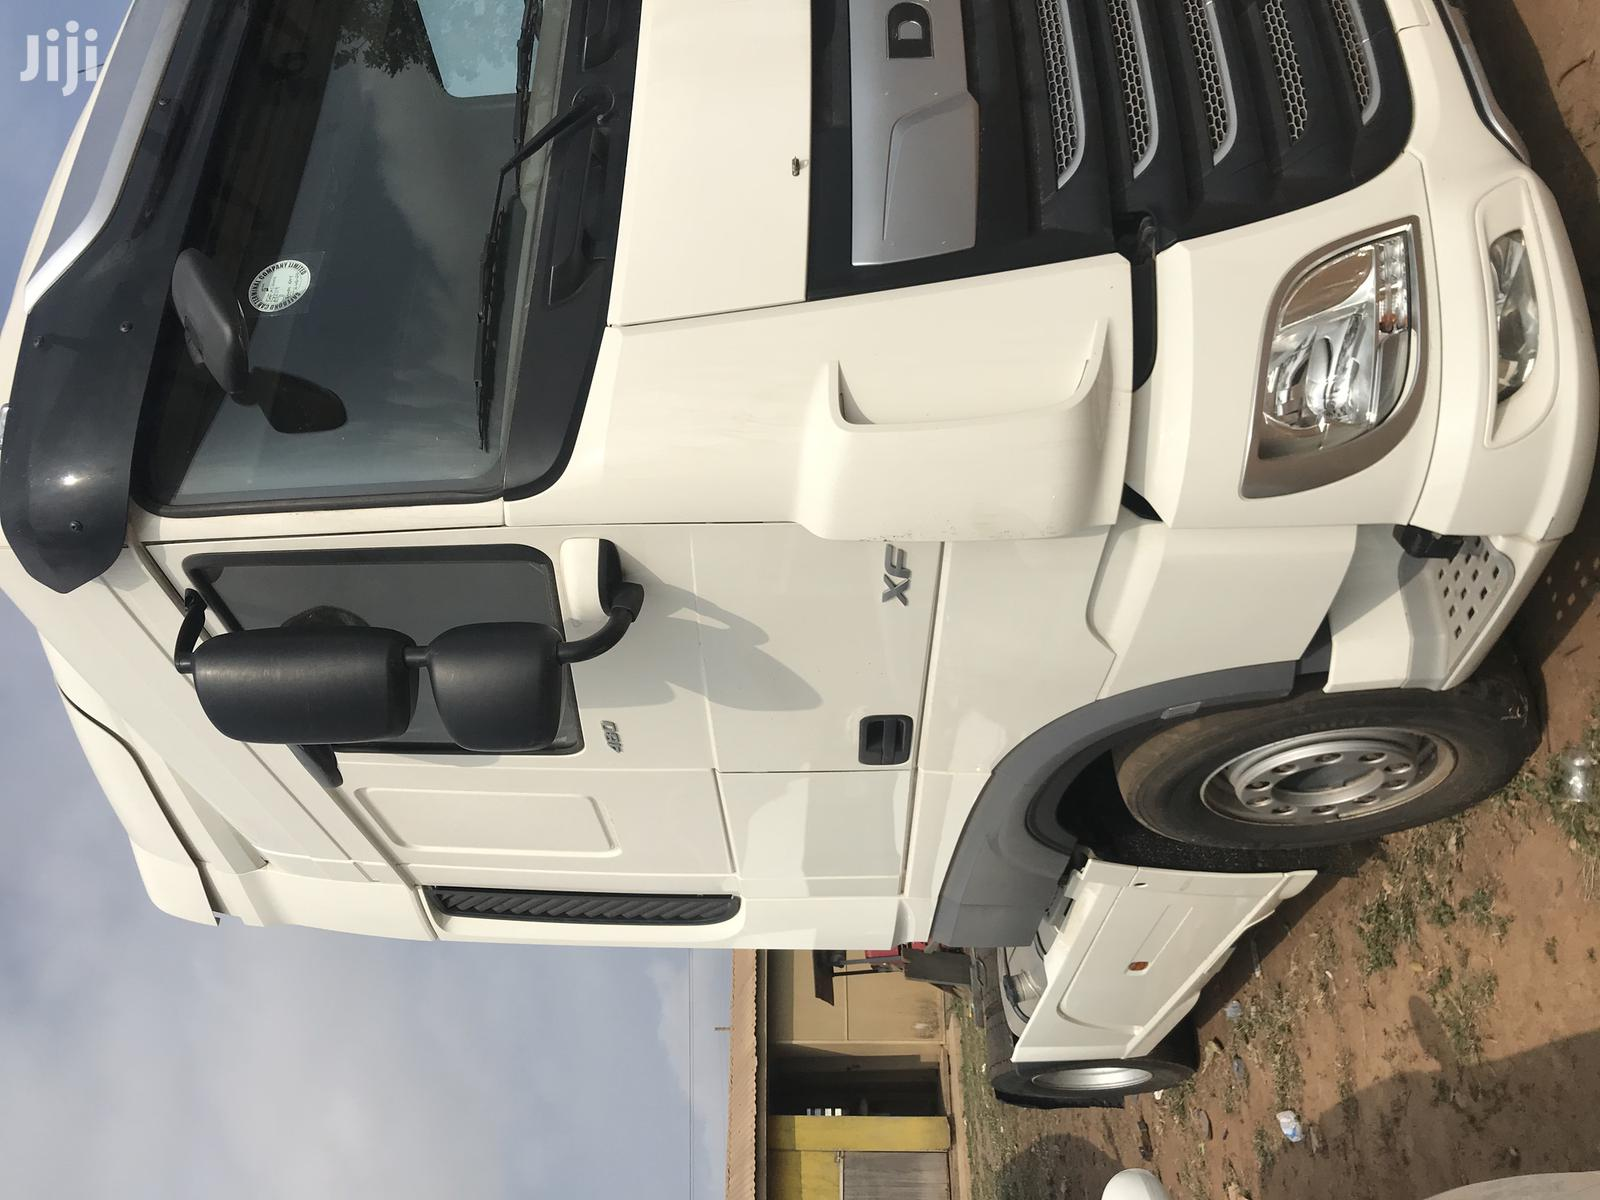 DAF XF 480 Hp Trailer Head for Sale | Trucks & Trailers for sale in Tema Metropolitan, Greater Accra, Ghana